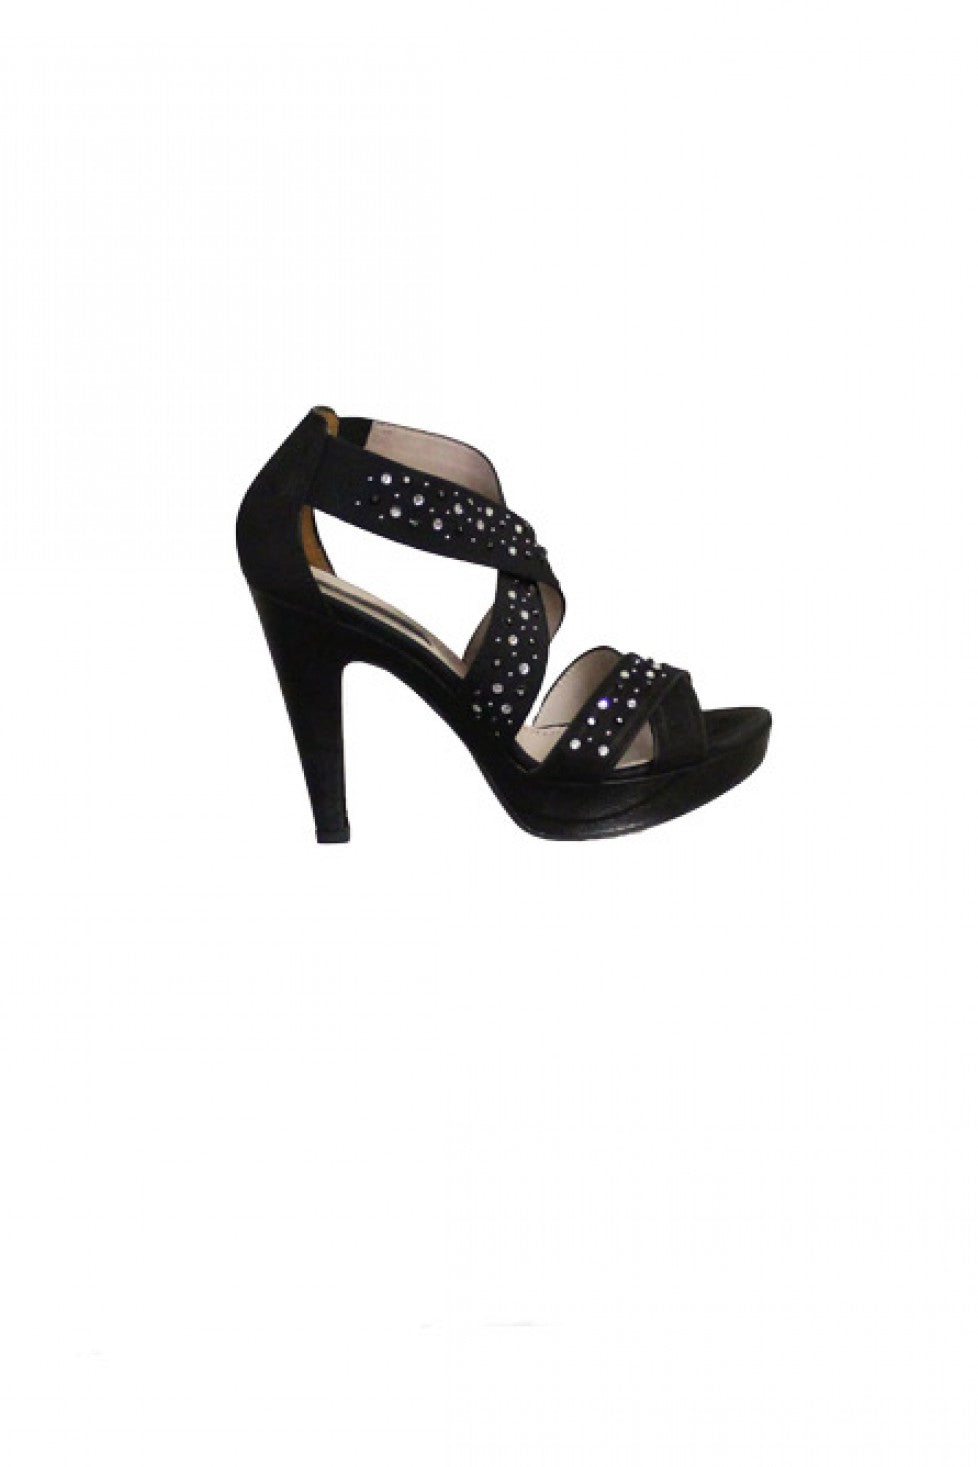 Black Studded Progetto Sandal Heel Style and Grace